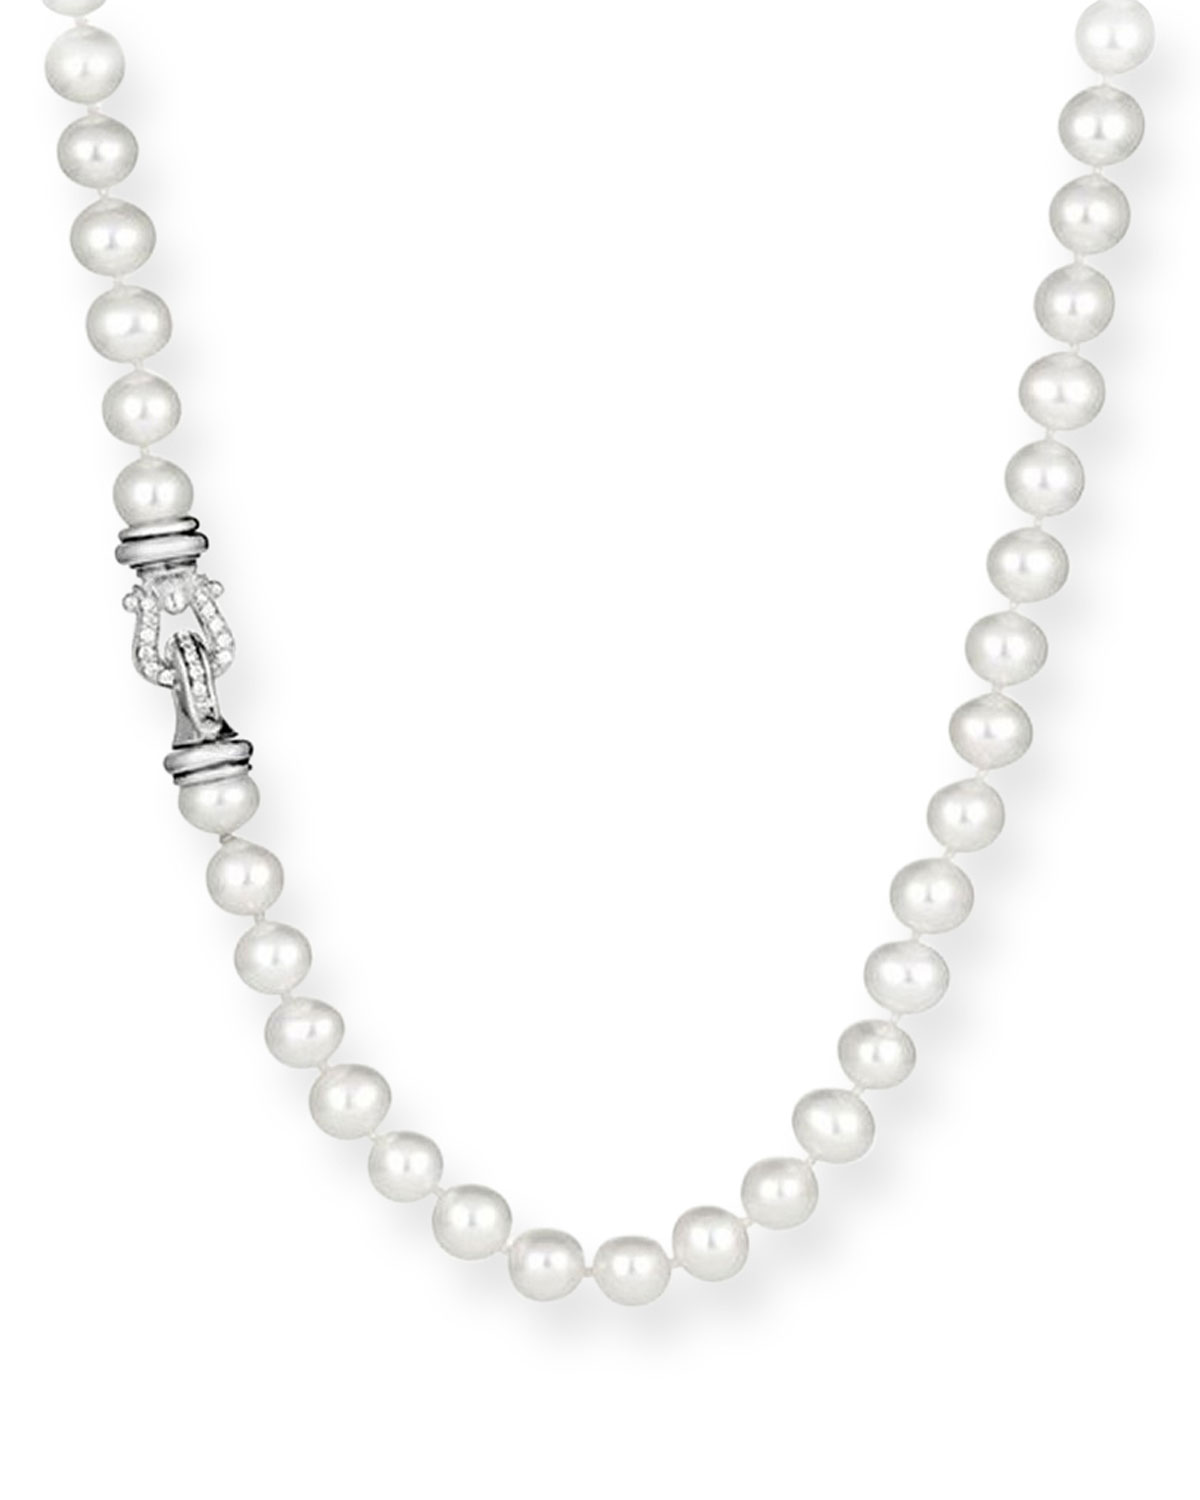 Pearl Necklace with Diamonds, 24